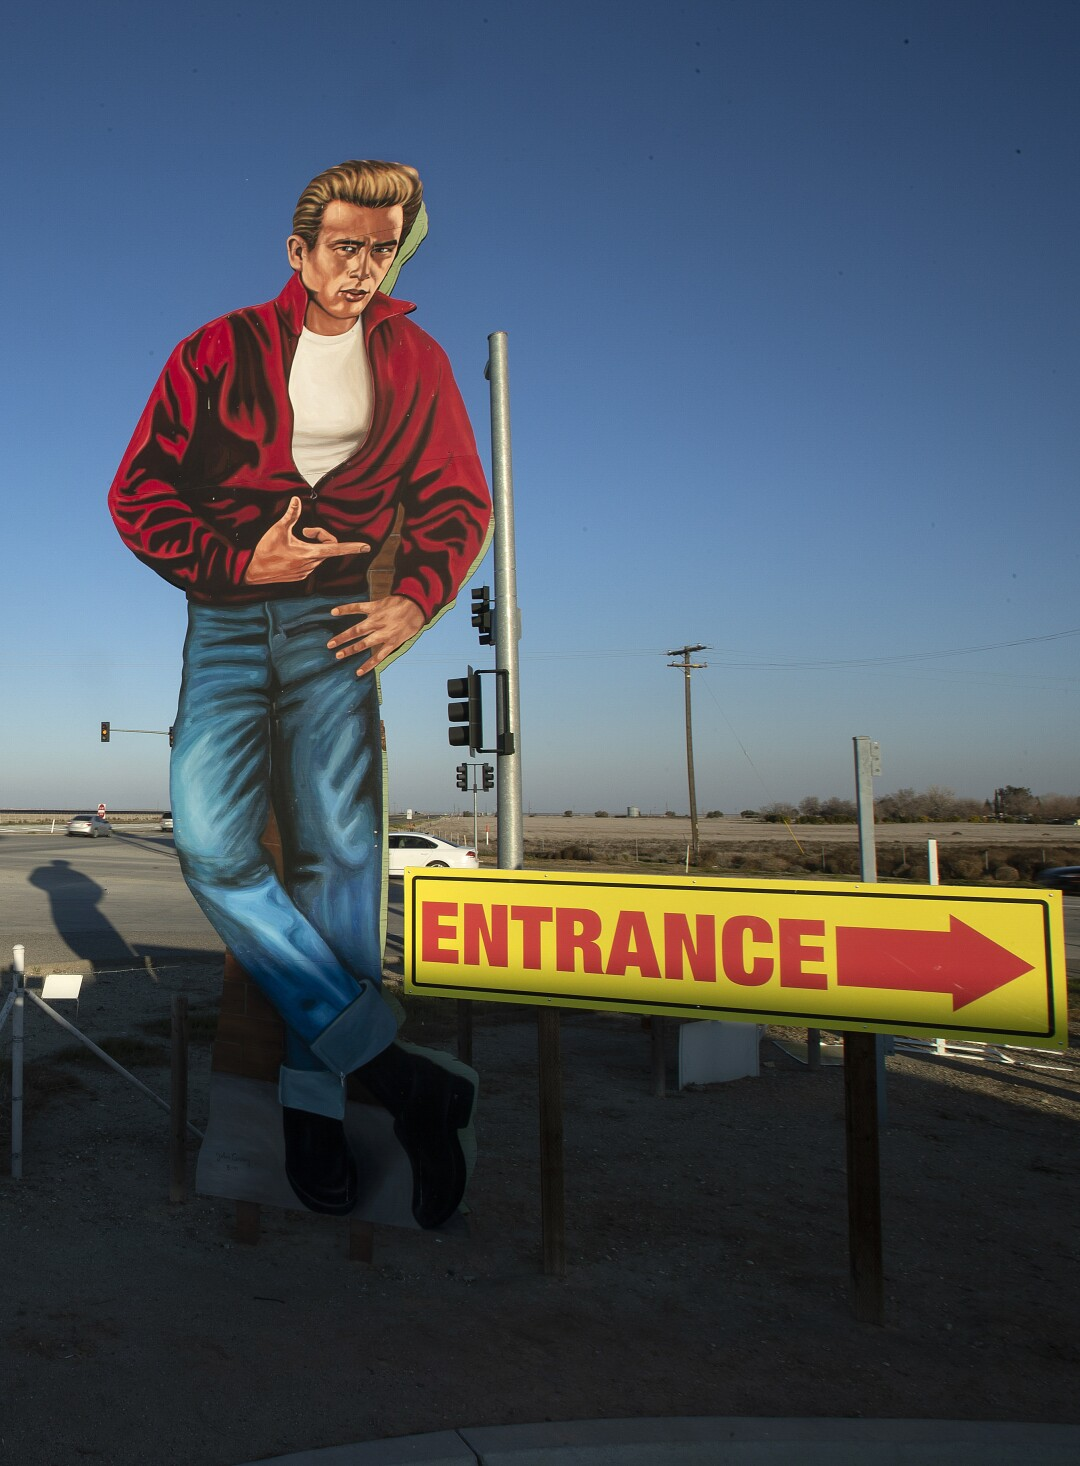 A cutout of actor James Dean at Blackwells Corner